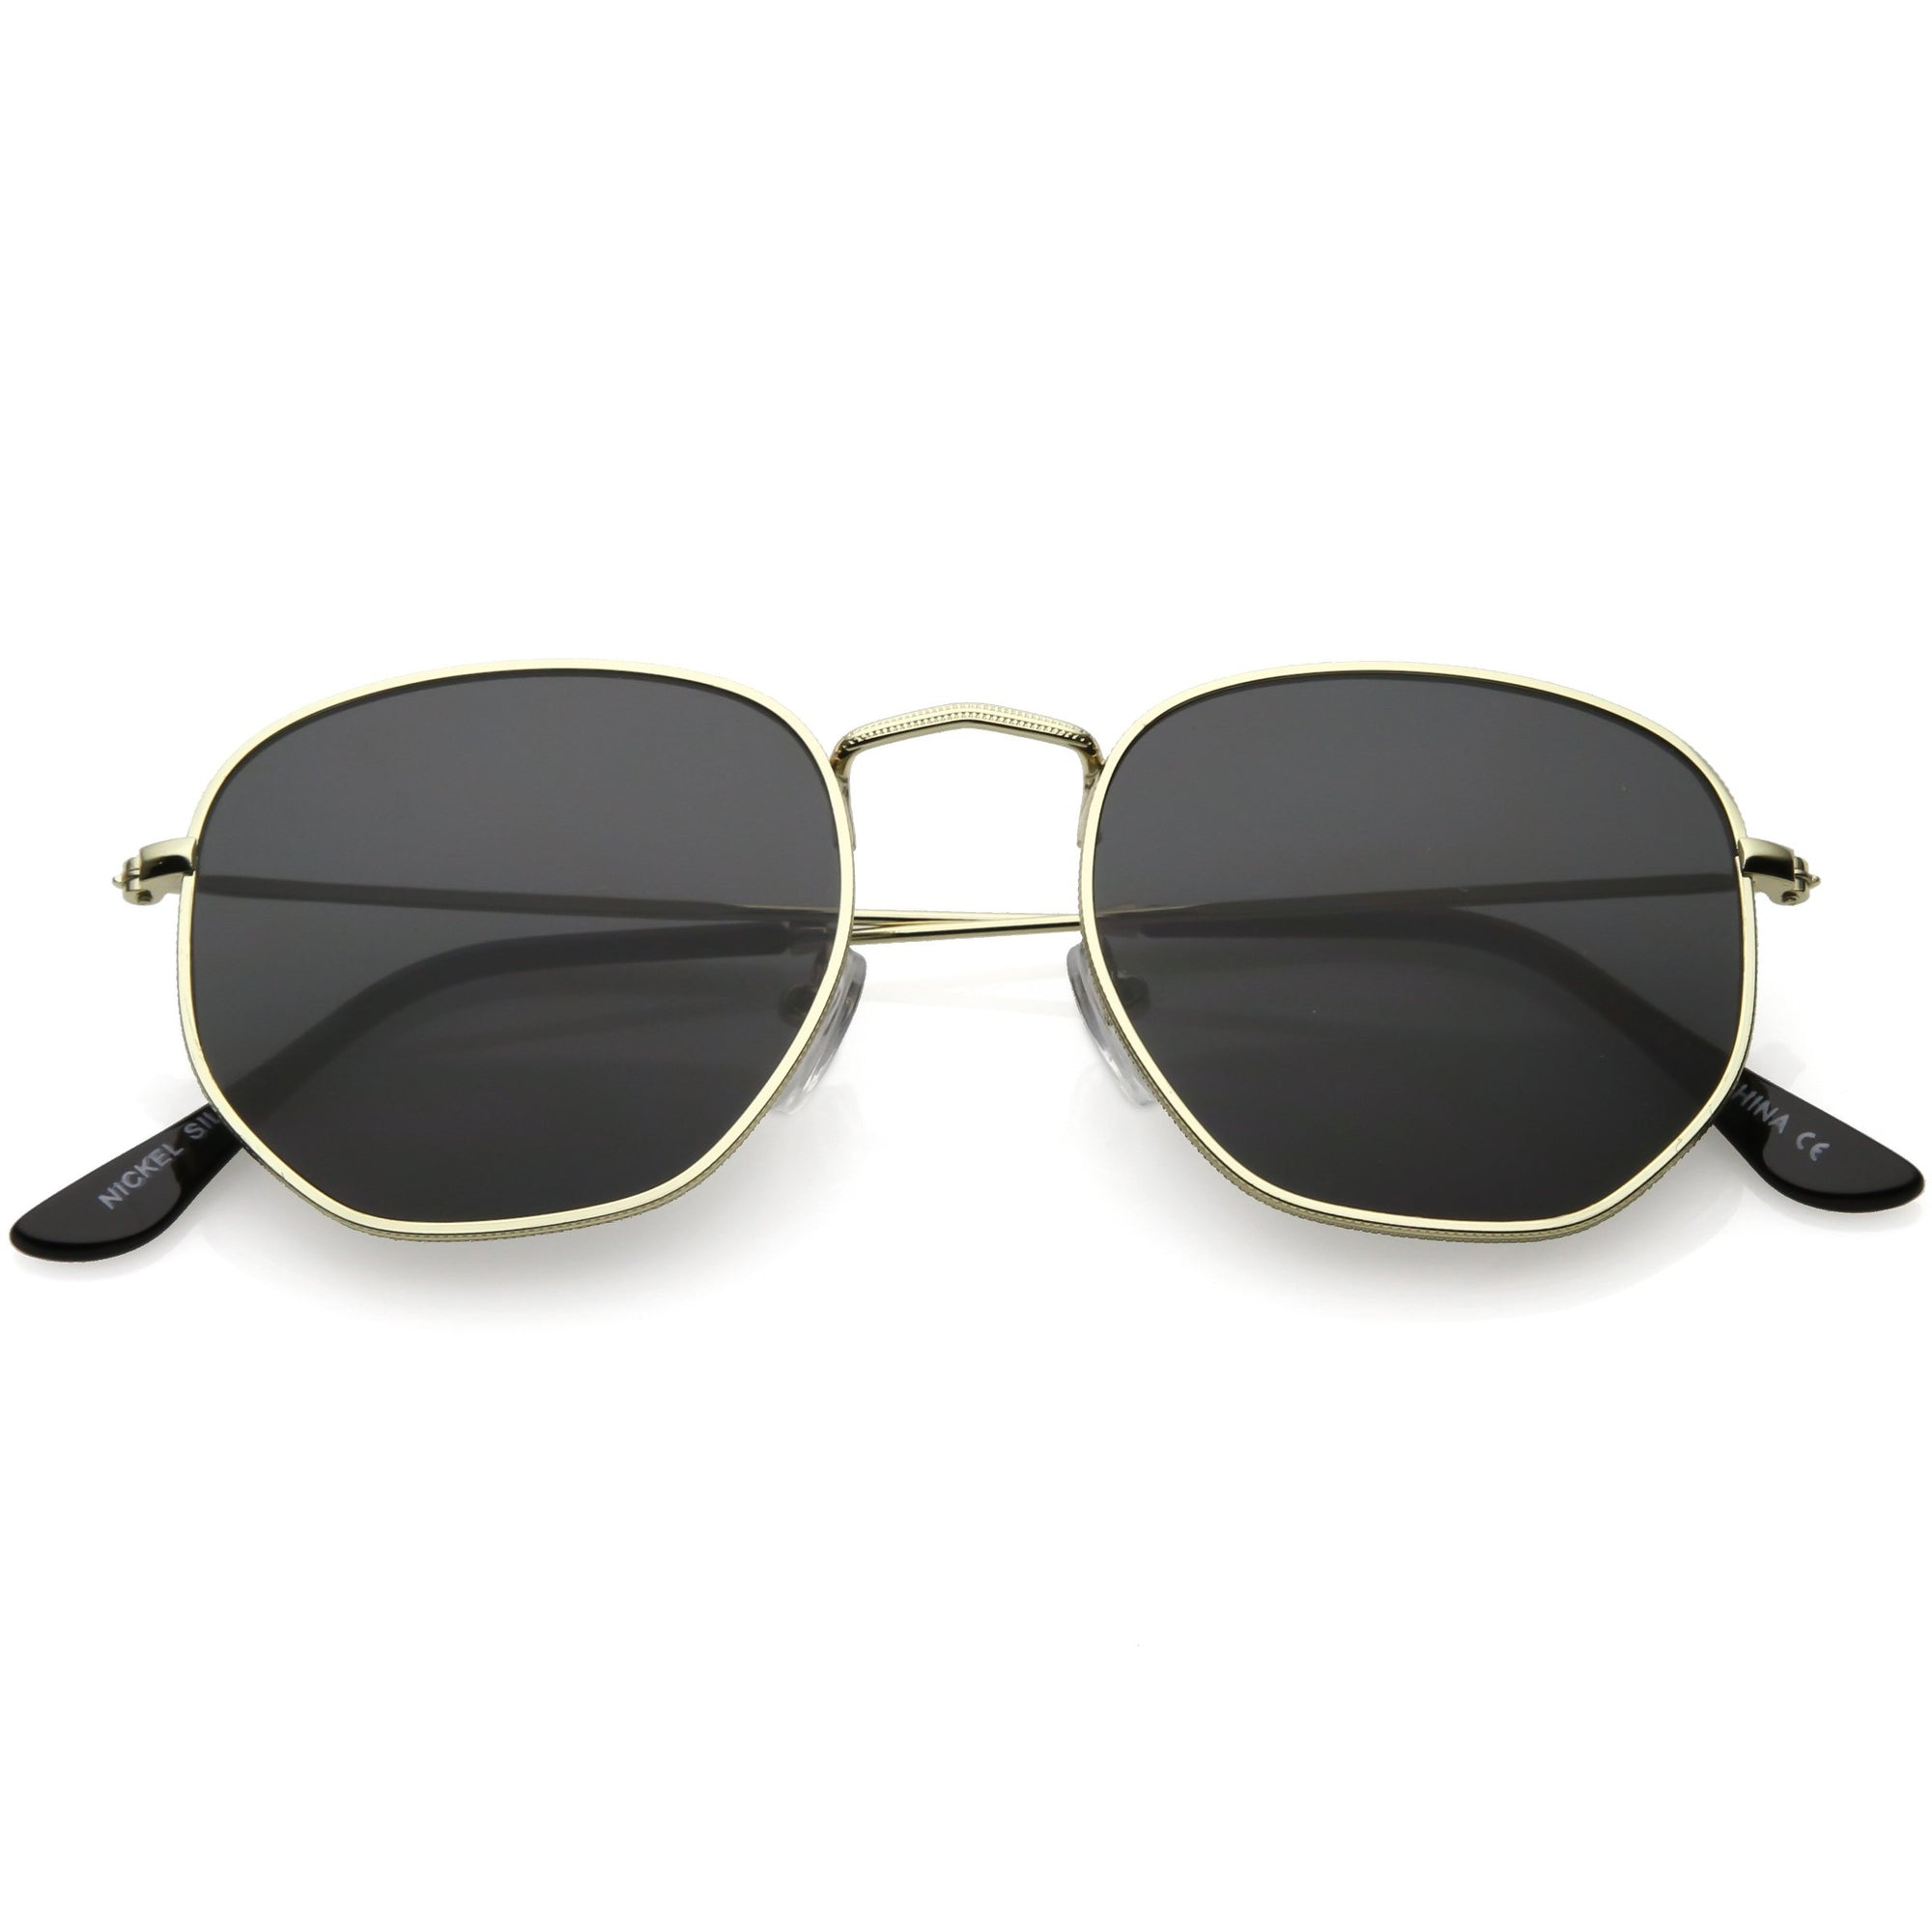 d9f26b2819 Retro Hipster Indie Sunglasses Tagged